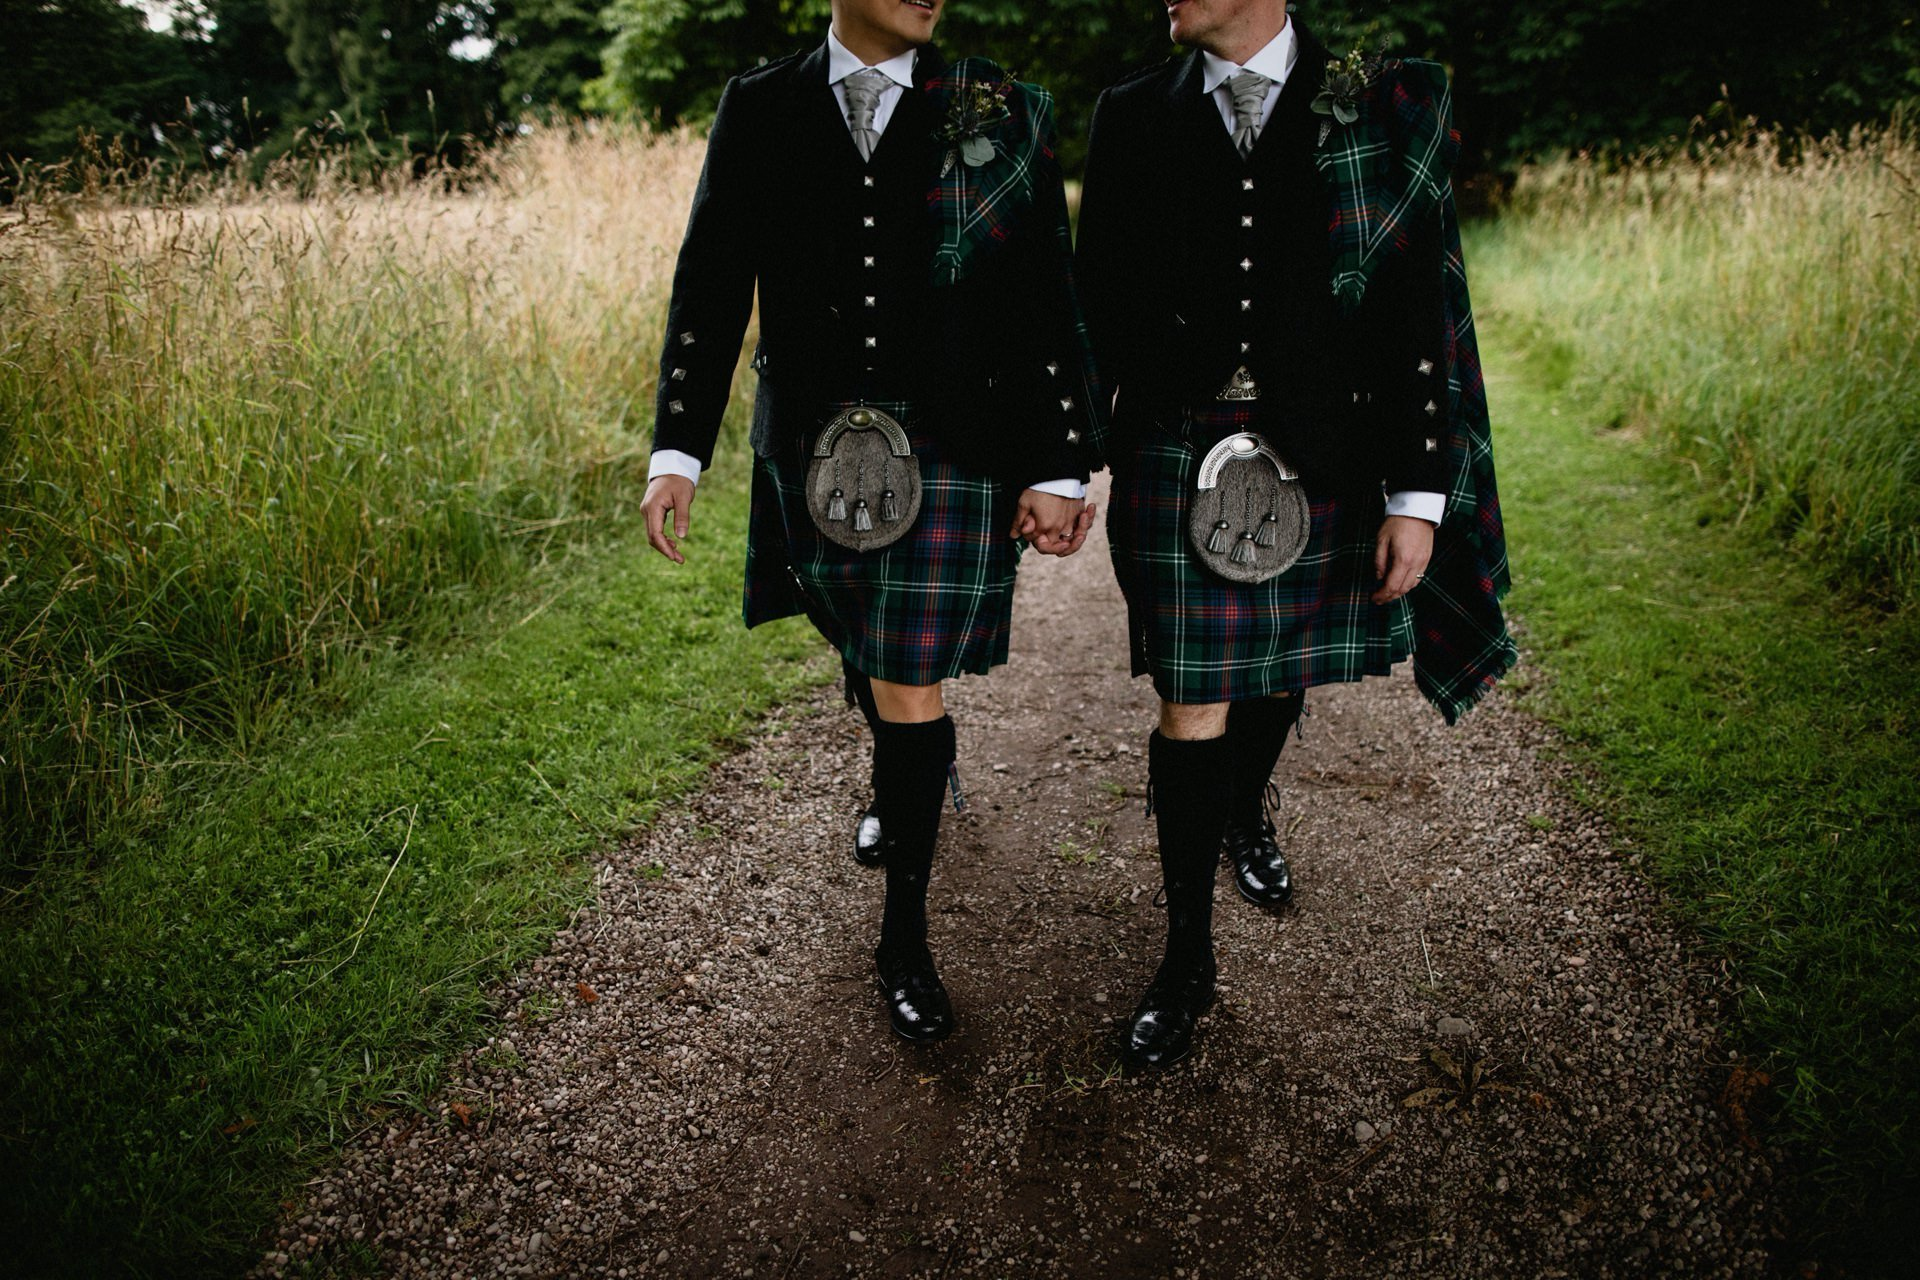 wedding kilts grooms scottish byre inchyra wedding